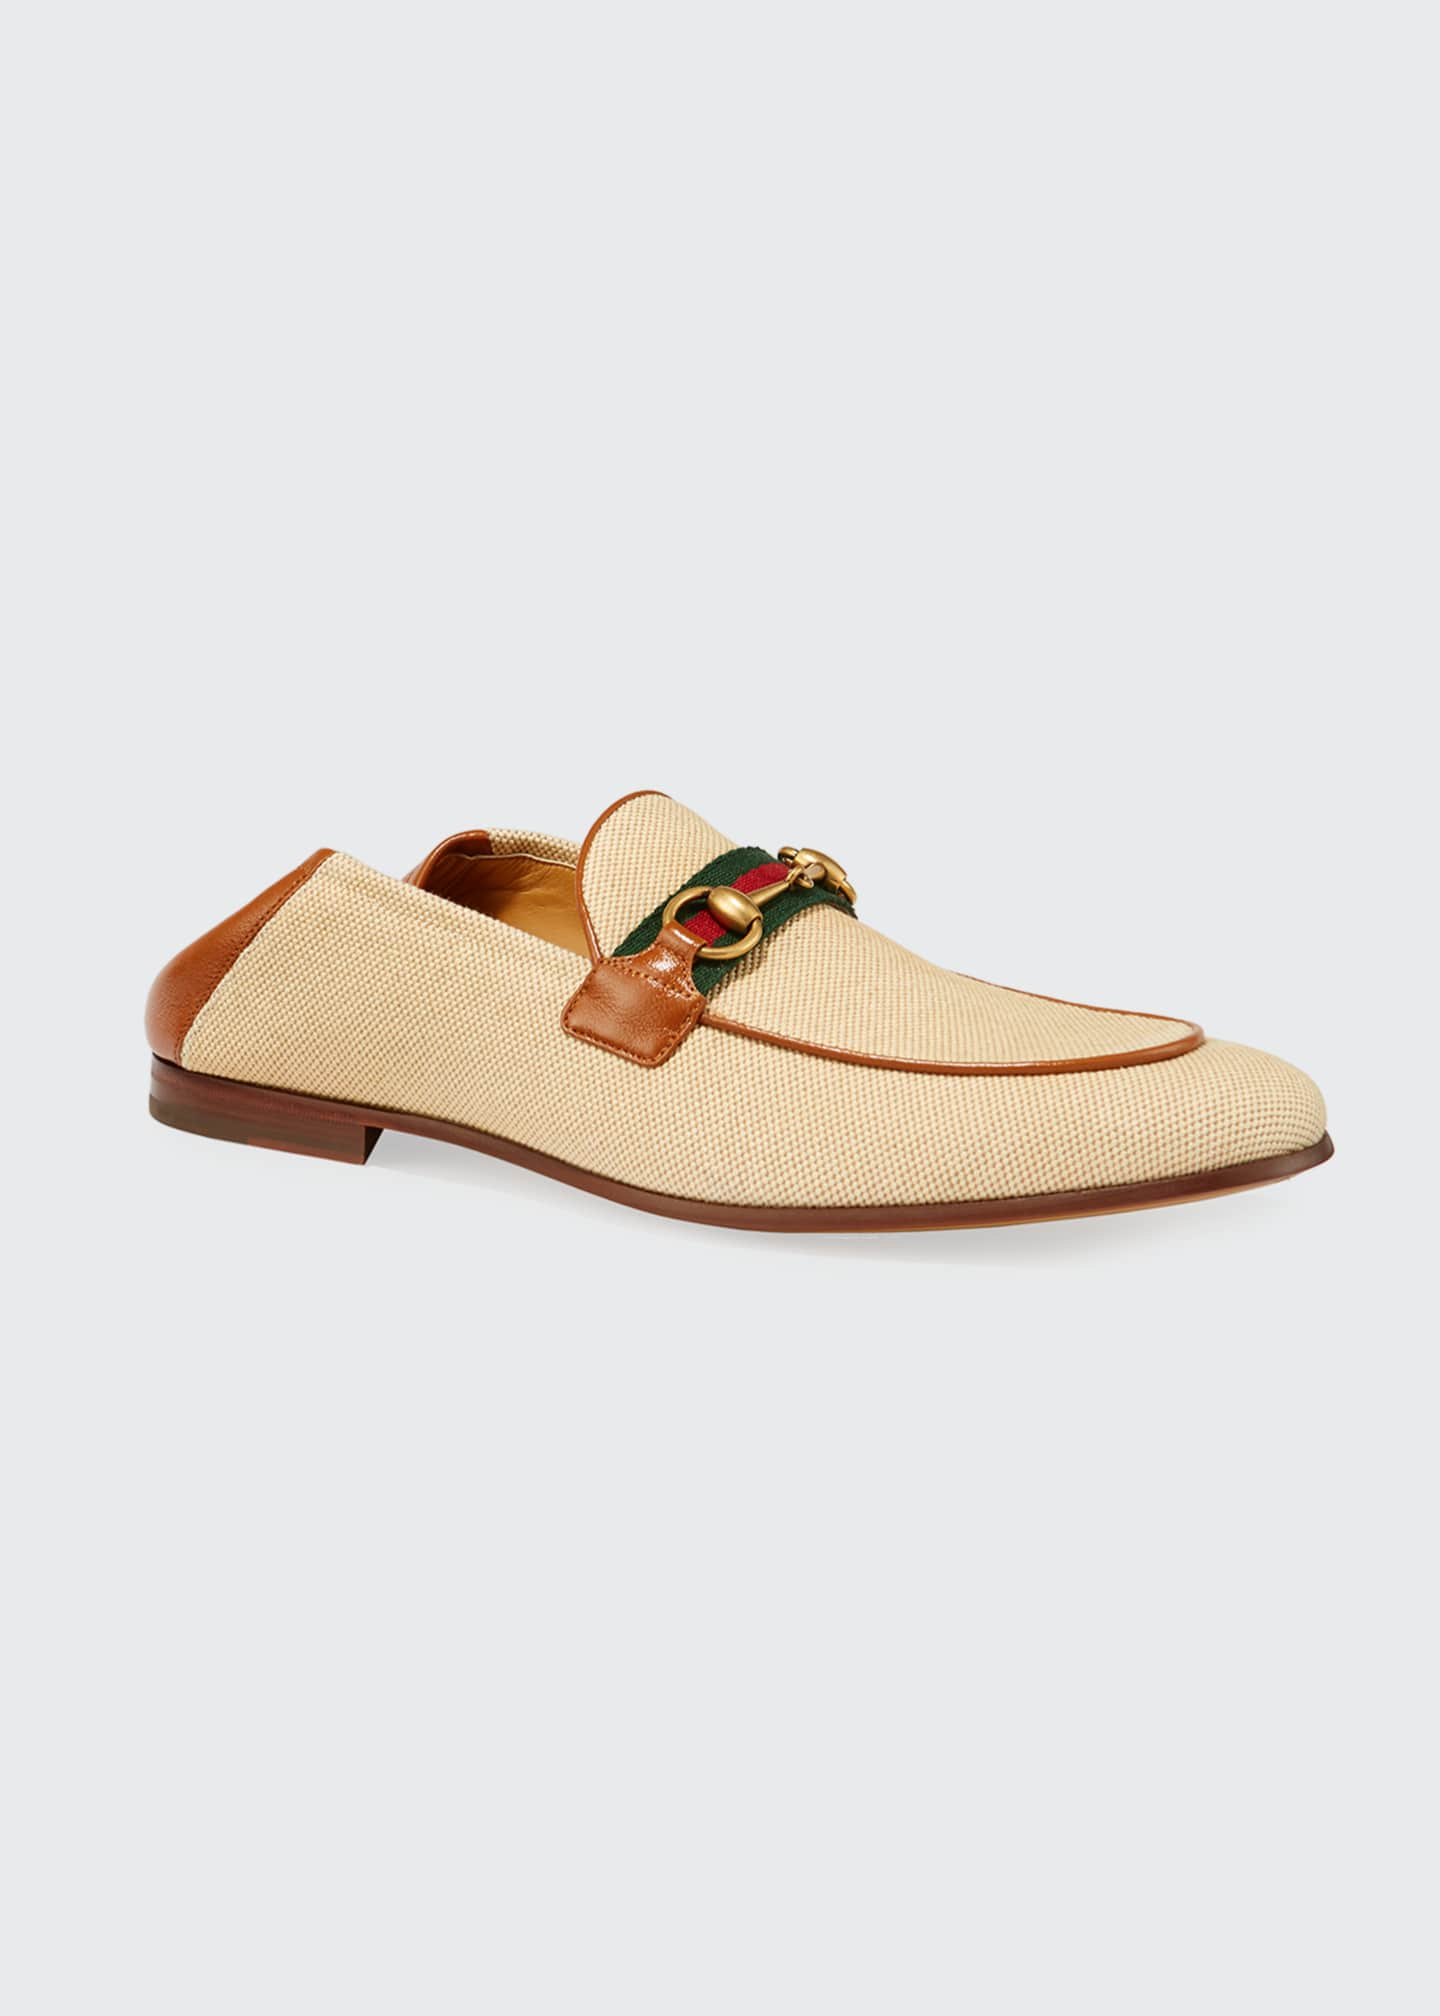 Gucci Men's Brixton Canvas & Leather Loafers